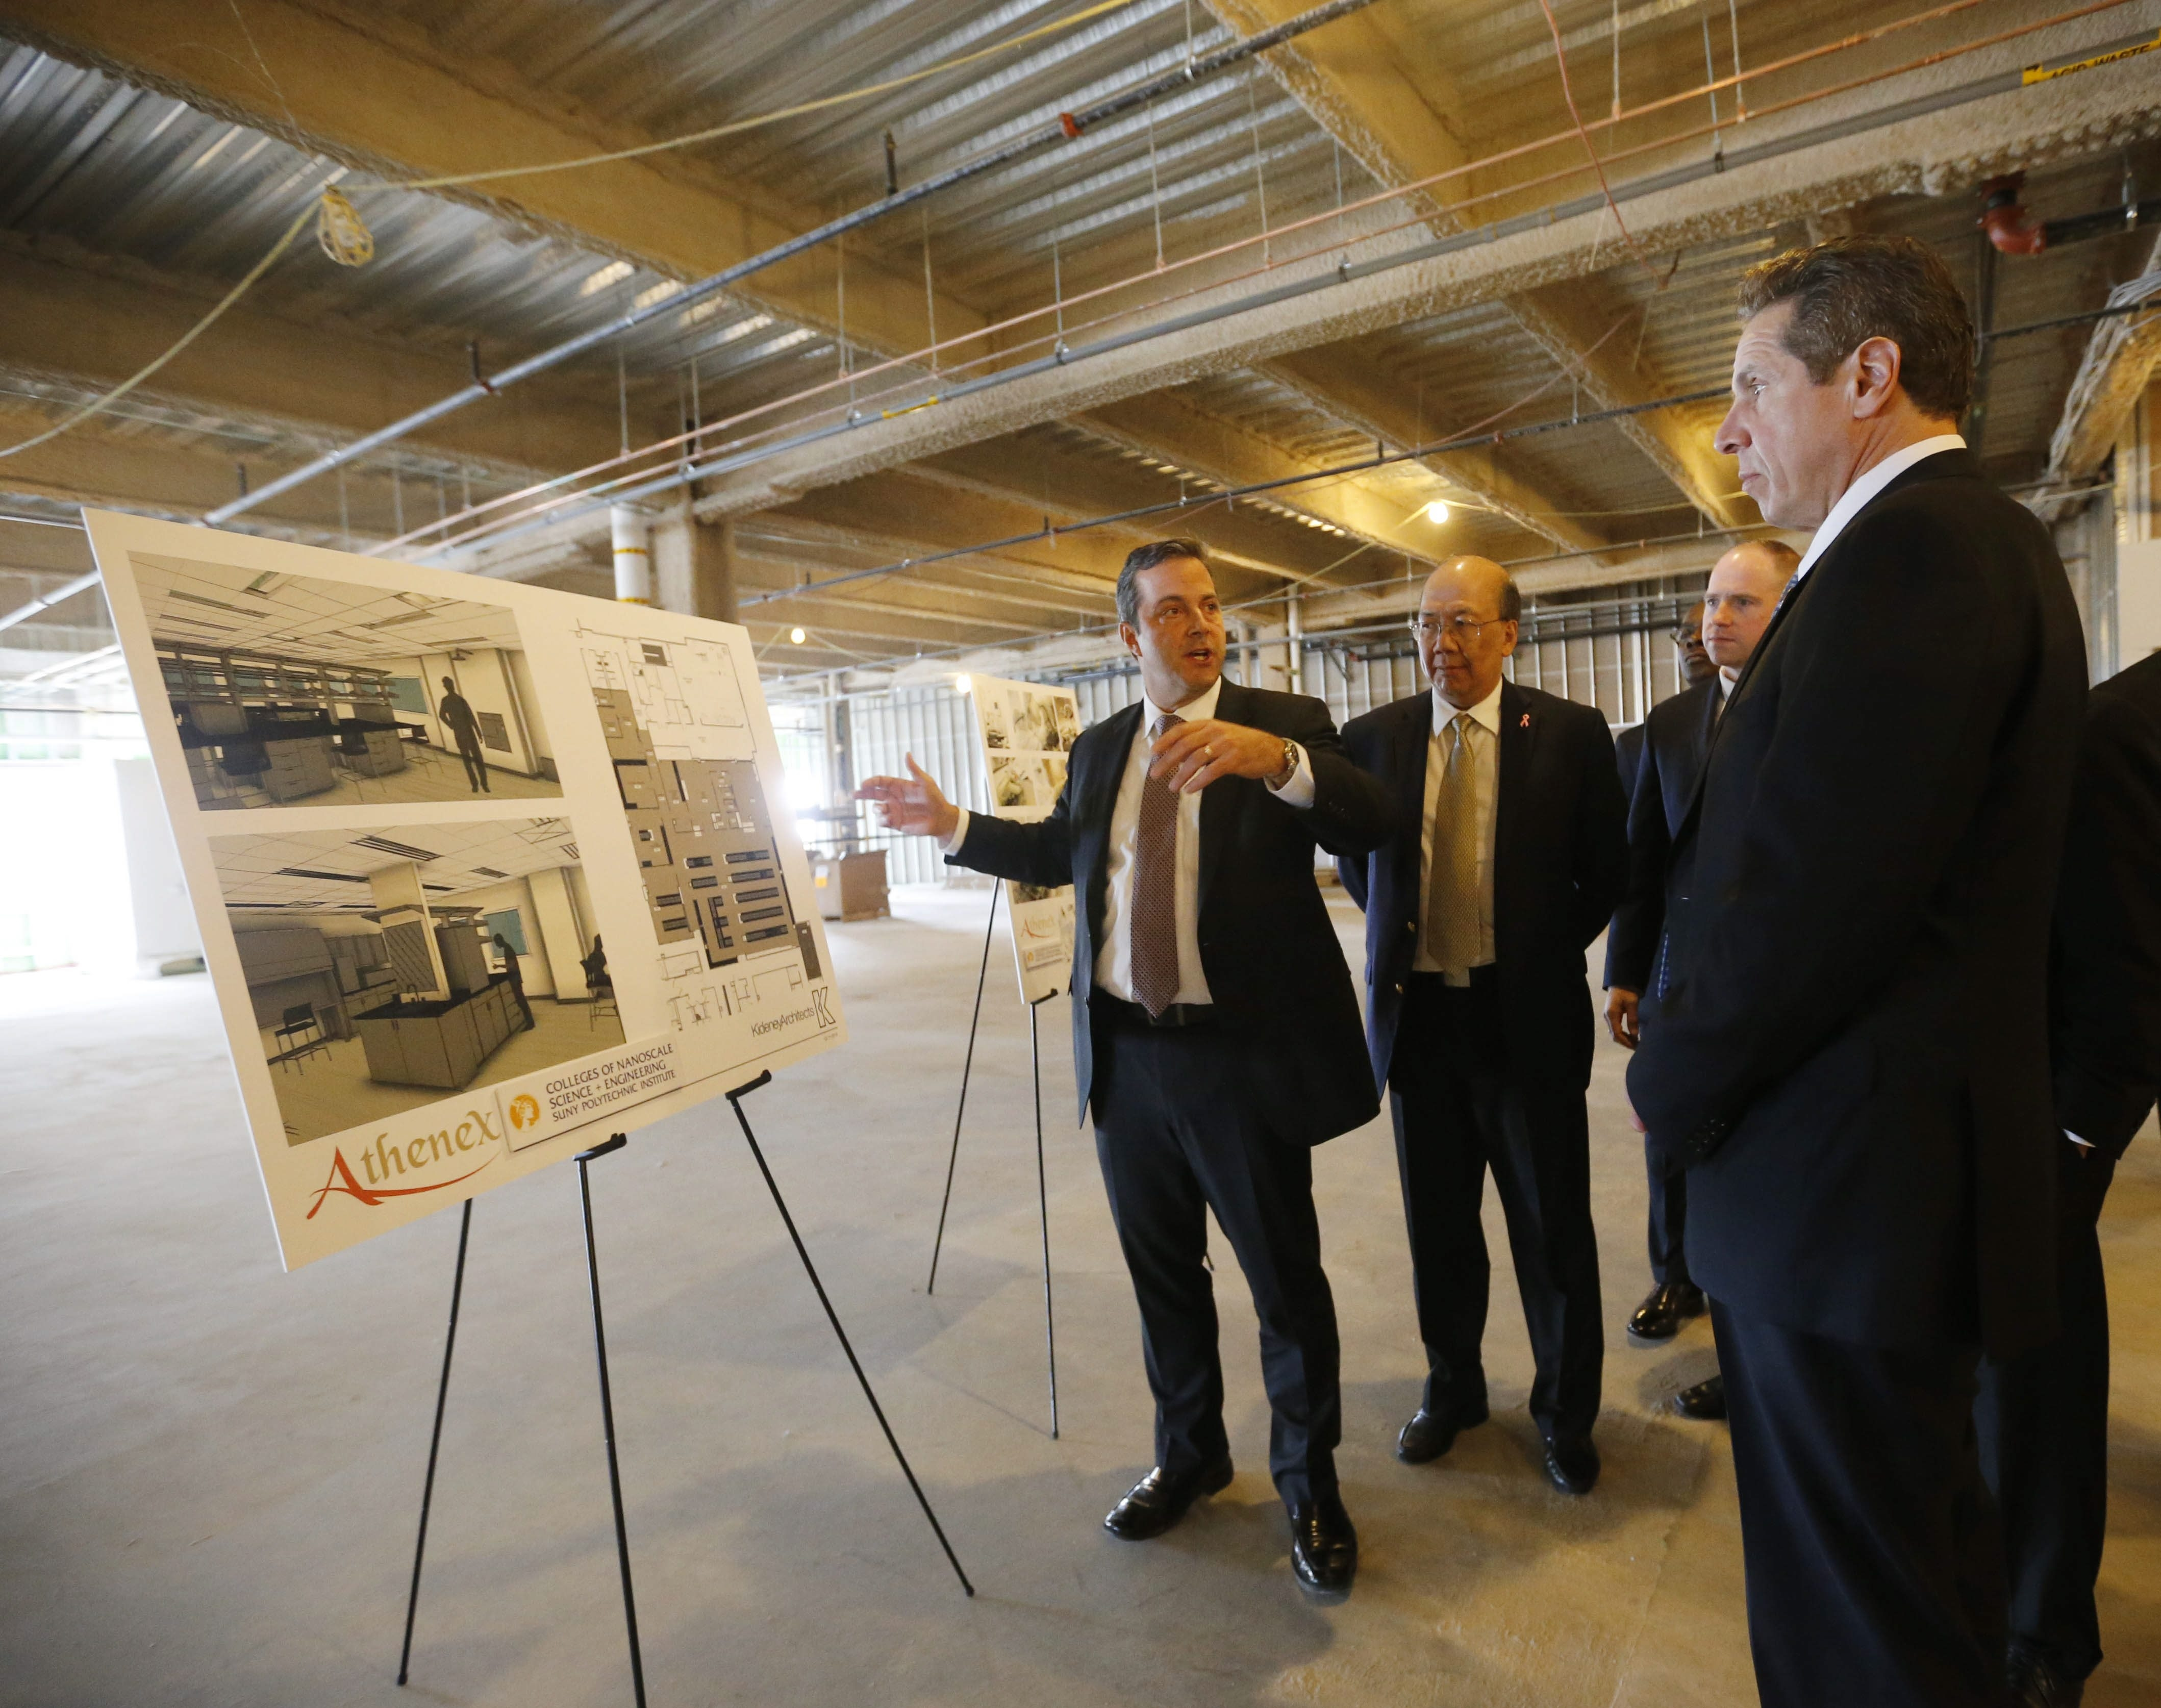 The Athenex factory in Dunkirk was announced with much fanfare early this year. While the state provided the money, Invest Buffalo Niagara assisted with the project.  (Derek Gee/Buffalo News file photo)